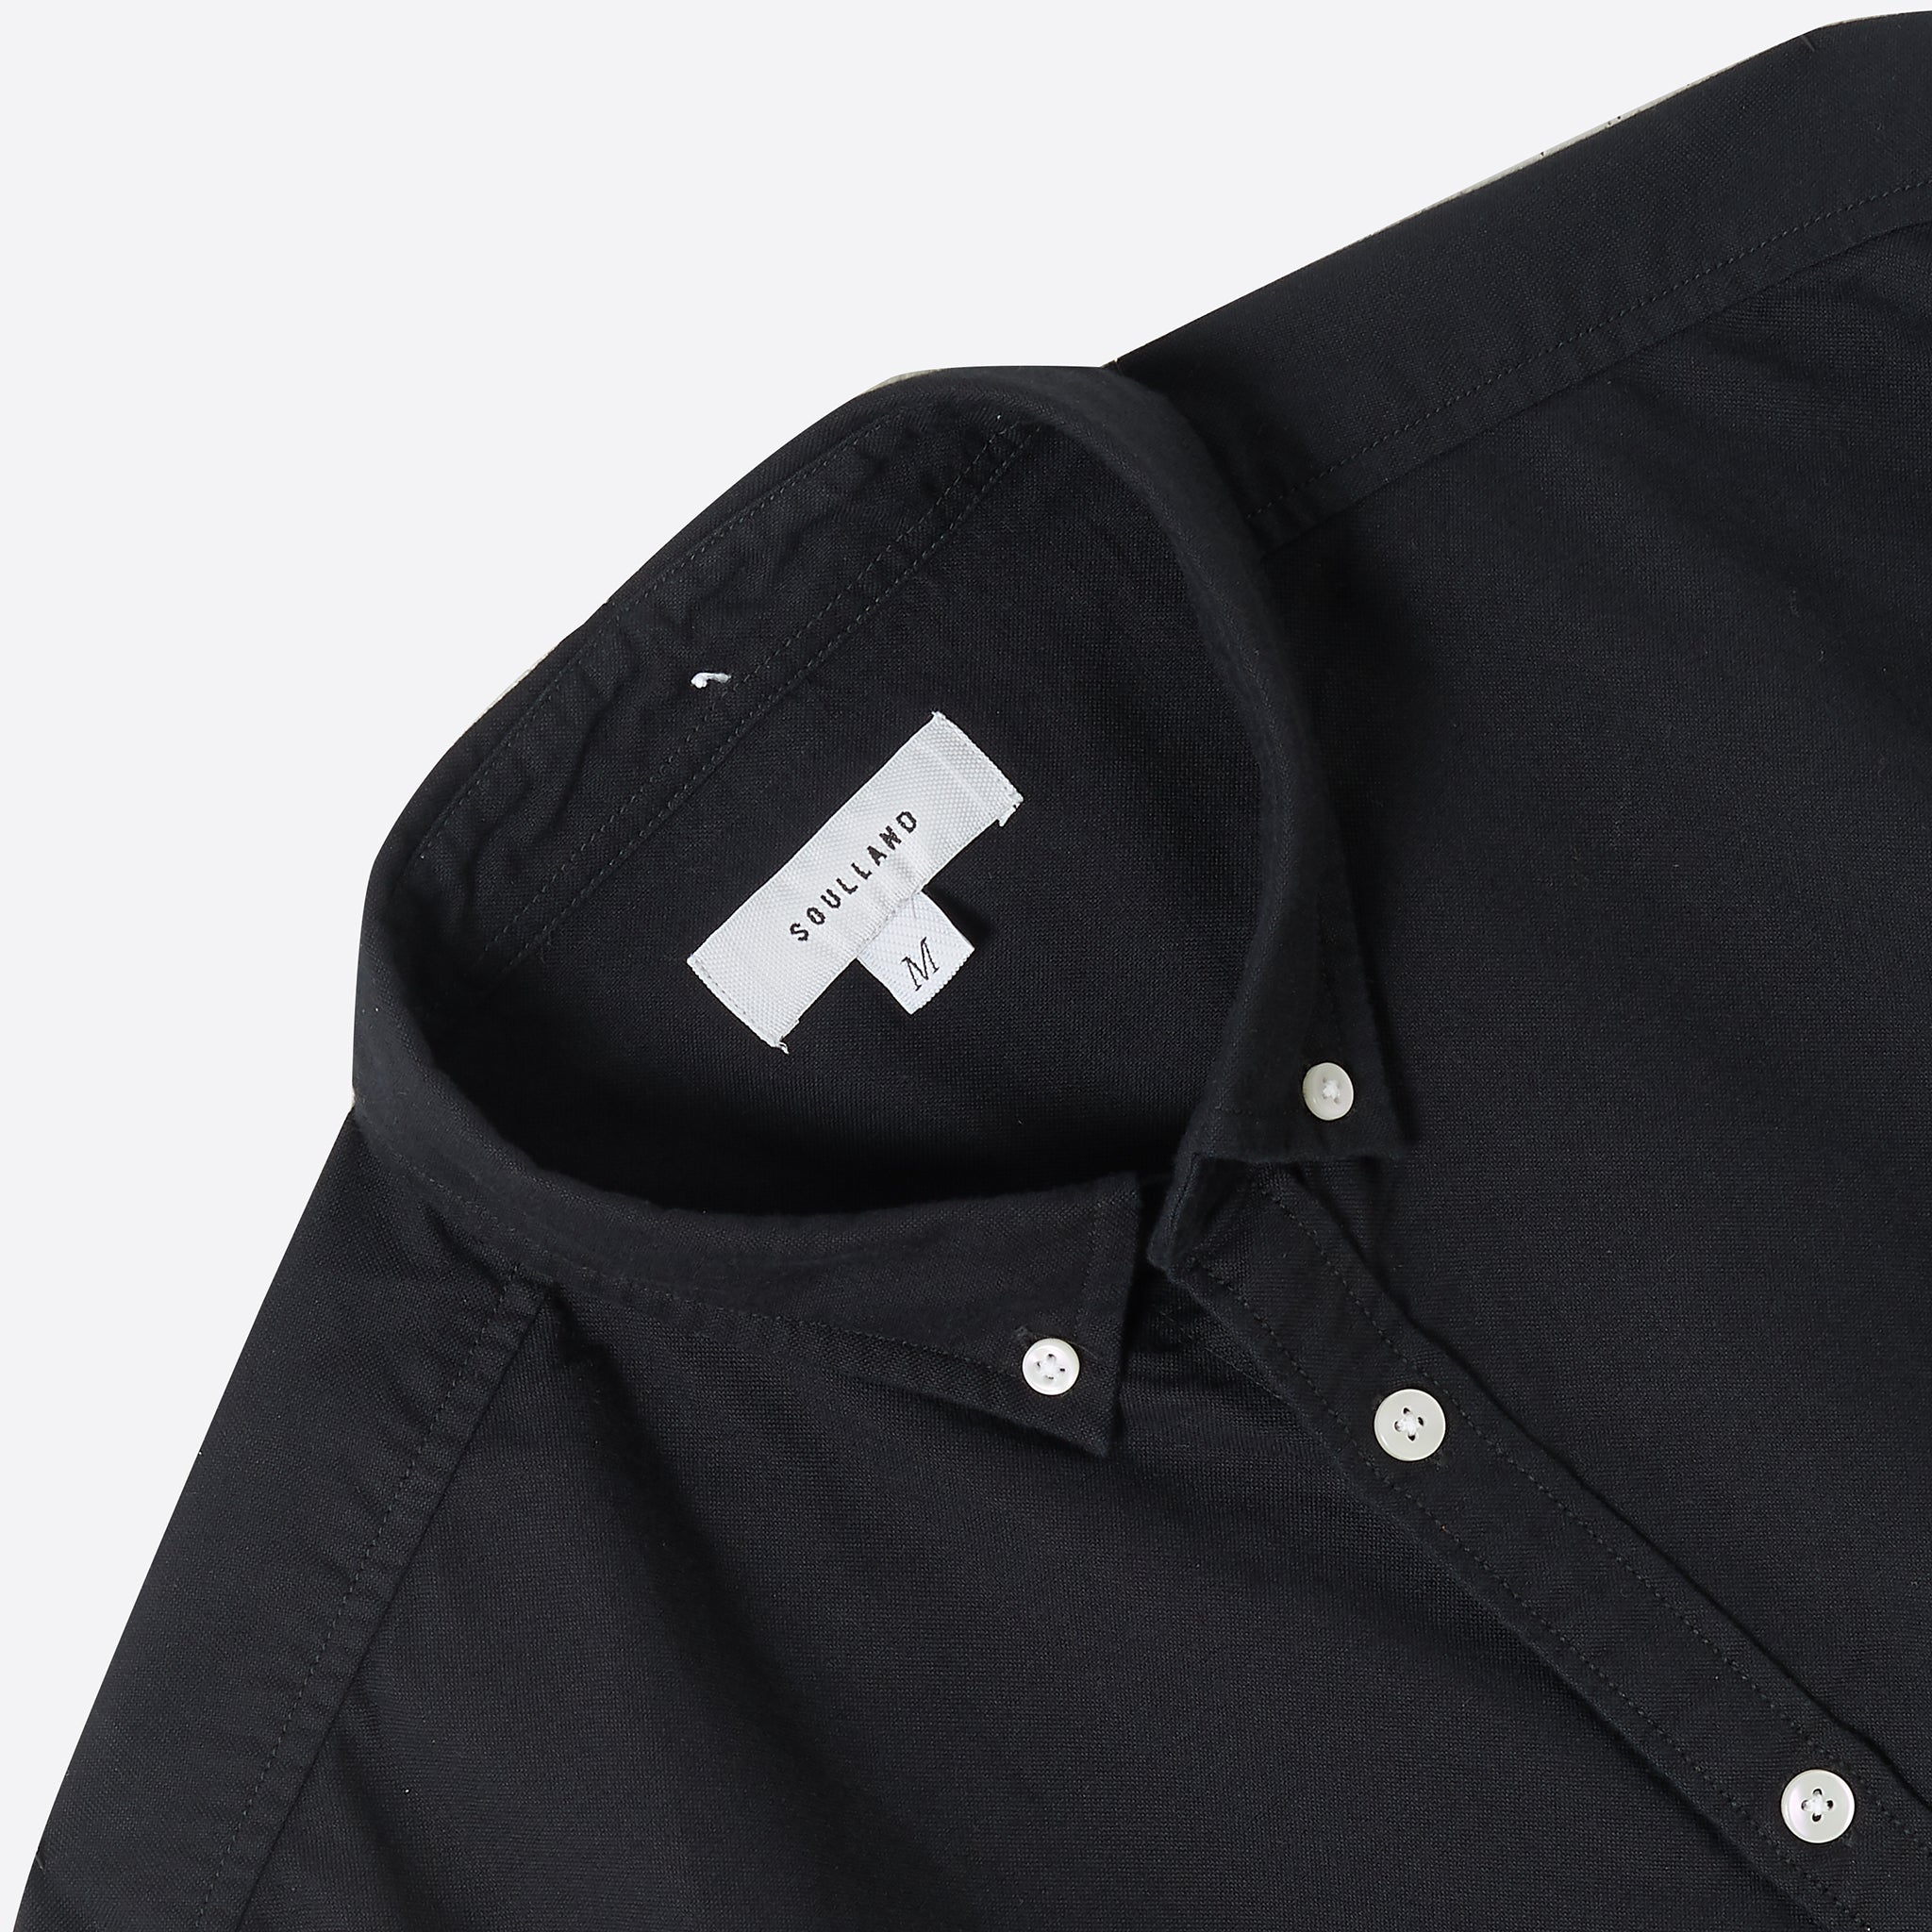 Soulland Goldsmith Shirt in Black